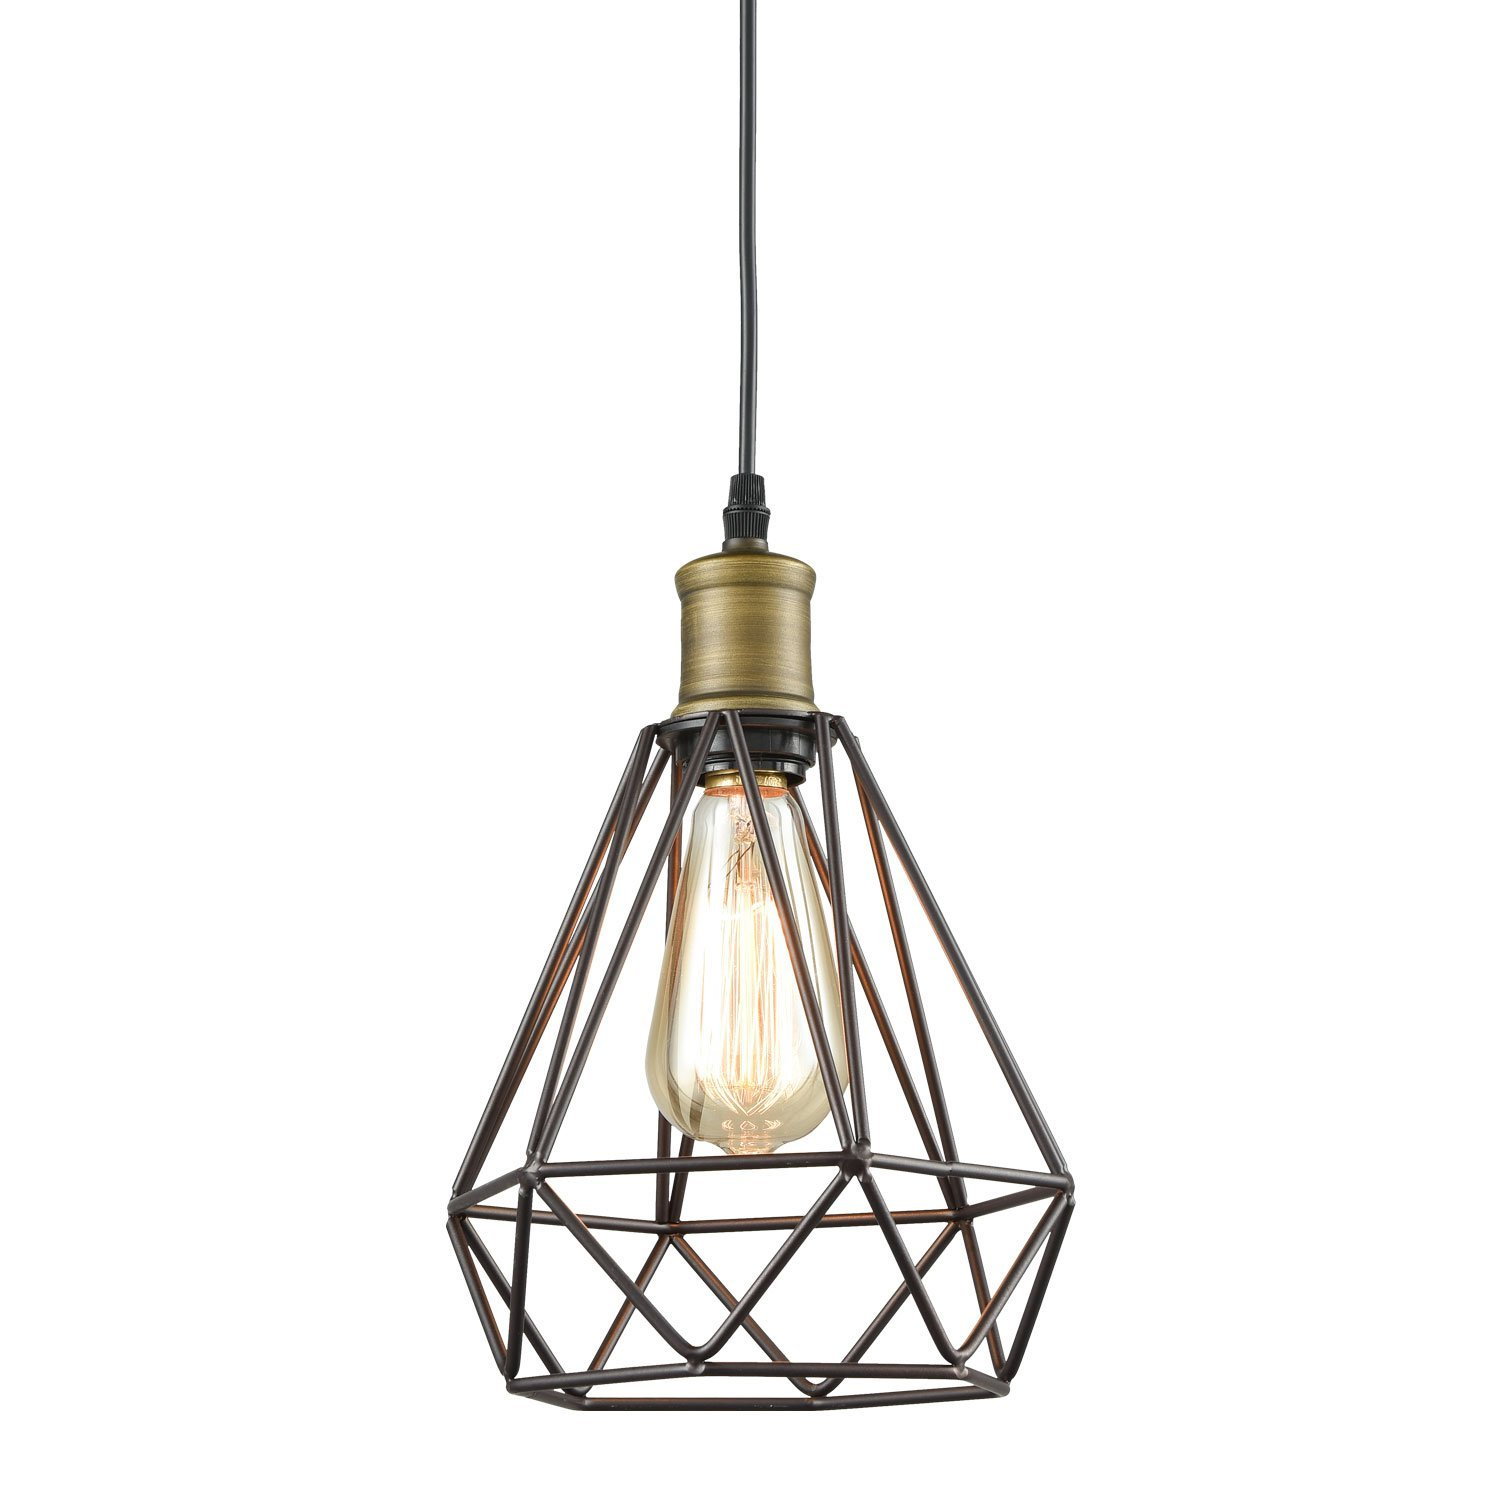 Pendant Lighting Farmhouse Light Fixtures Under 200 On Amazon